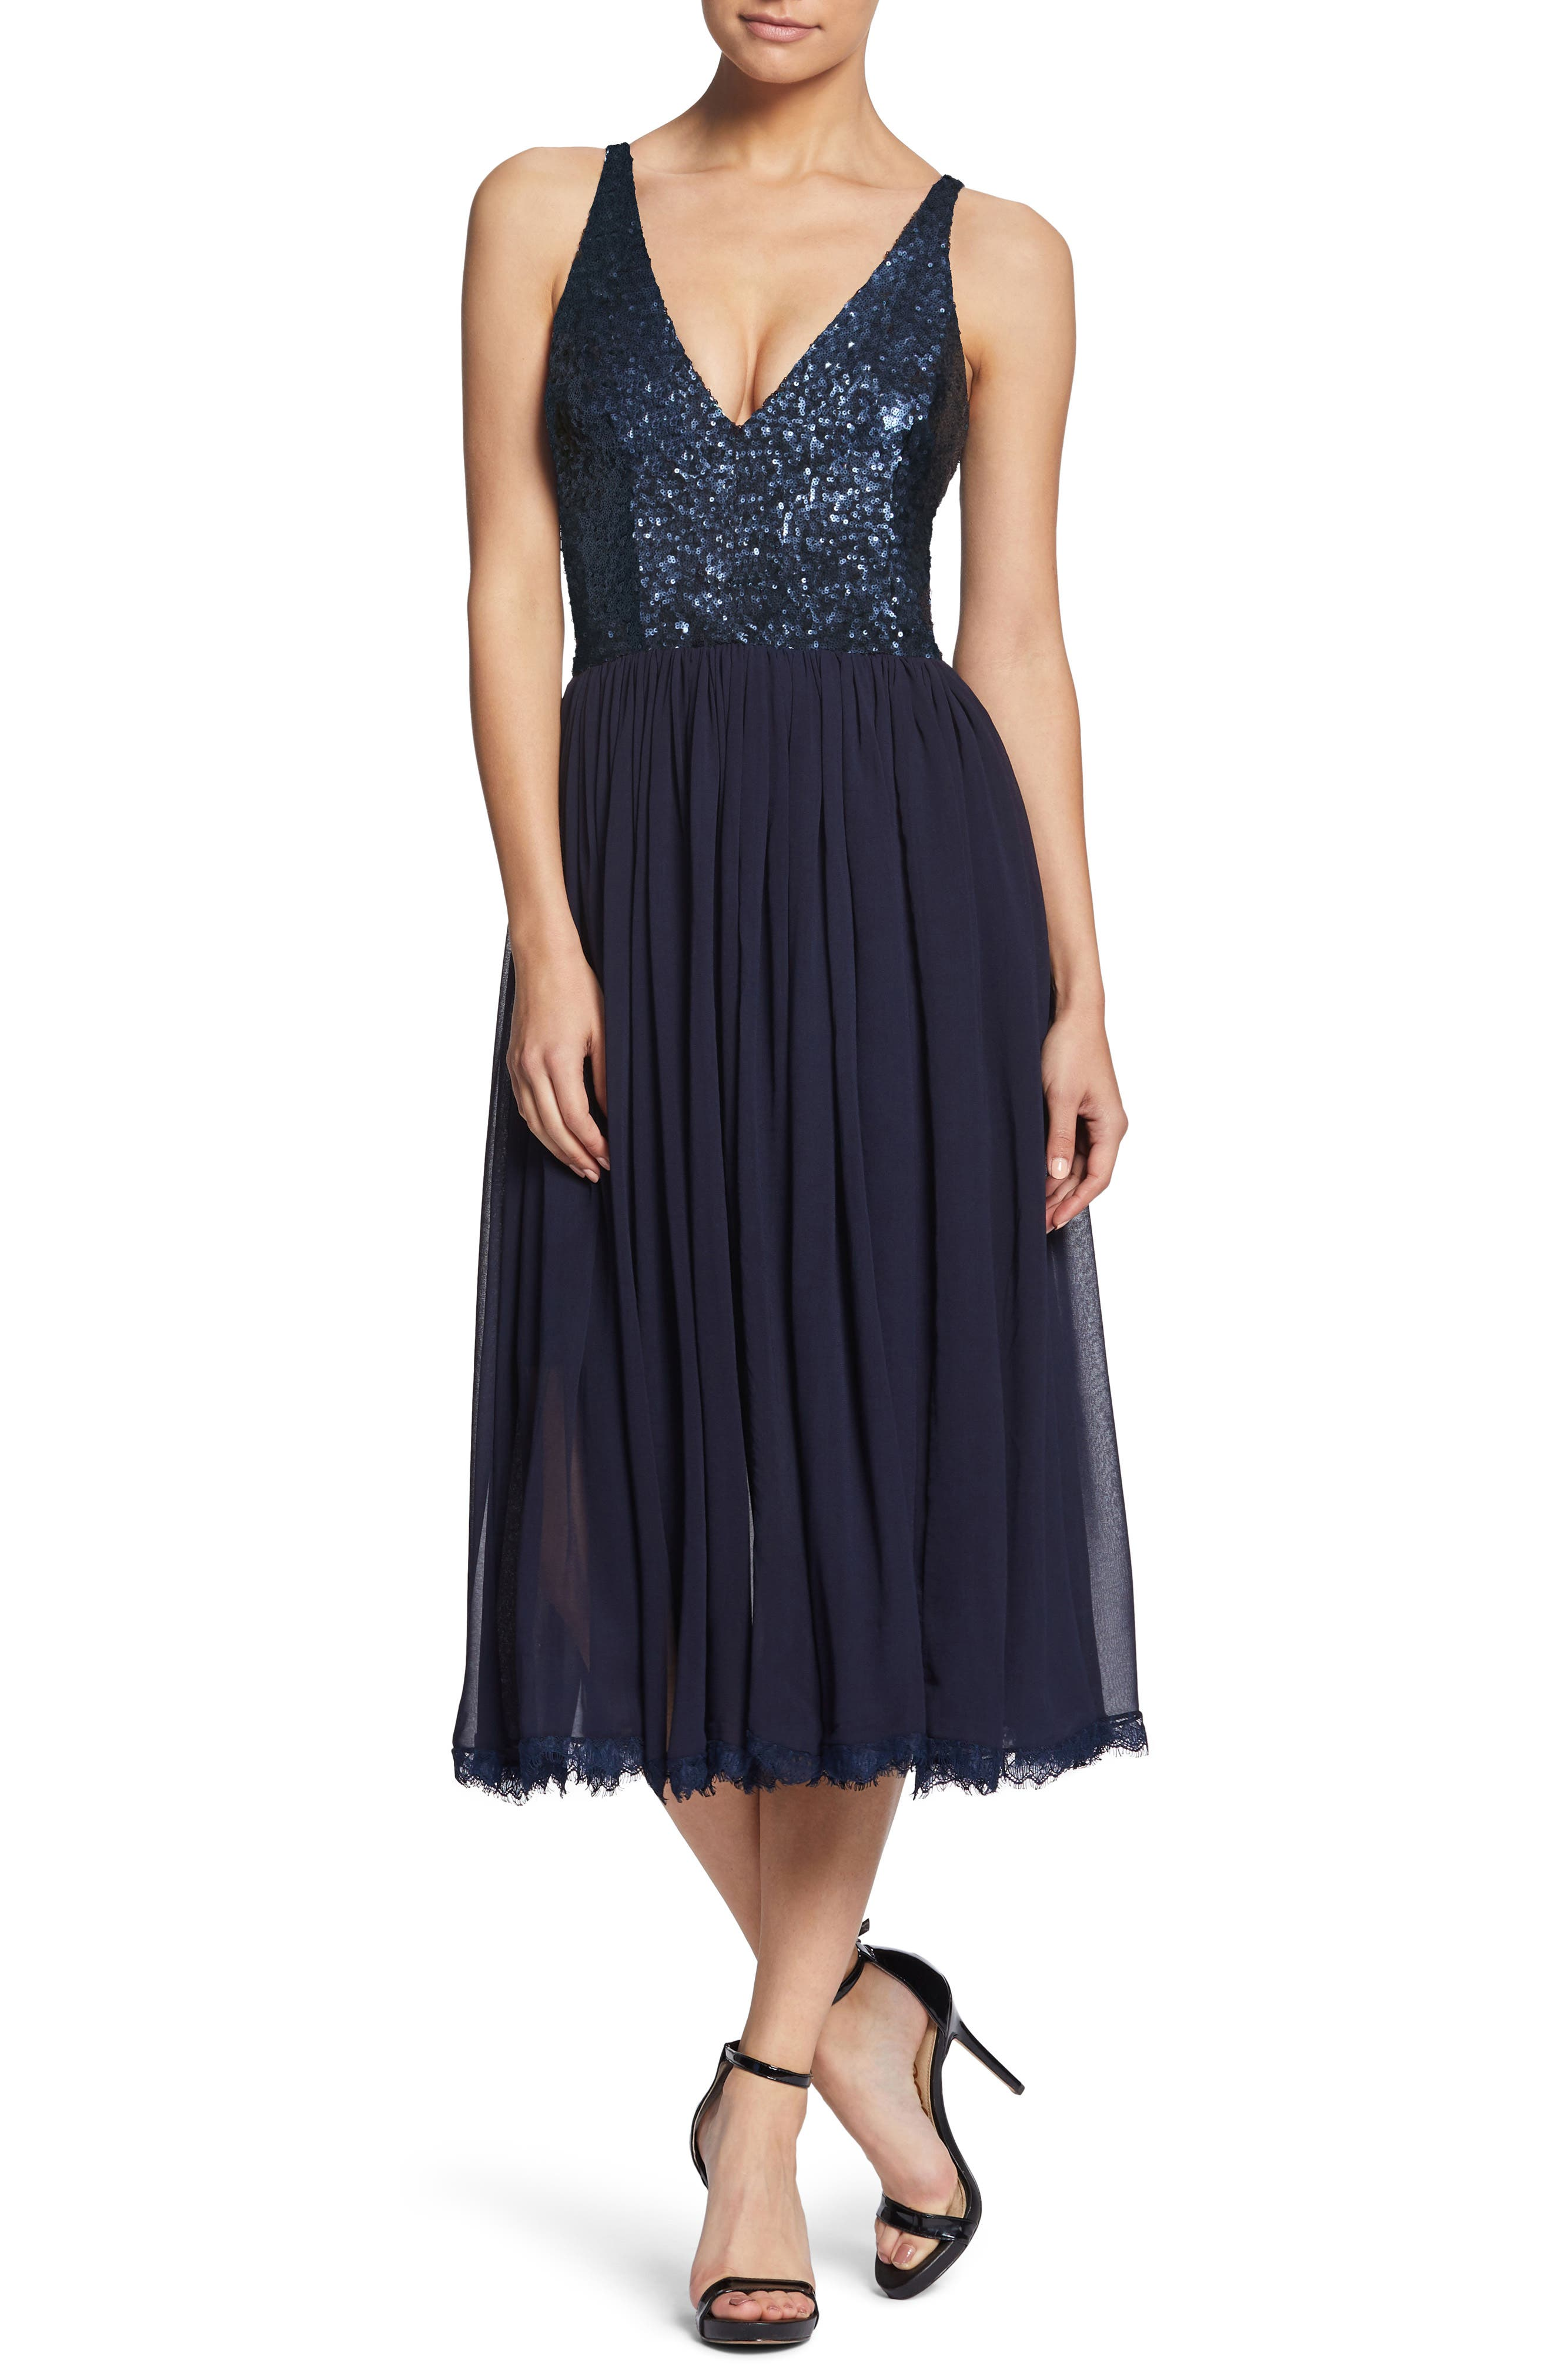 Tracy Plunging Sequin Bodice Tea Length Dress,                         Main,                         color, Navy